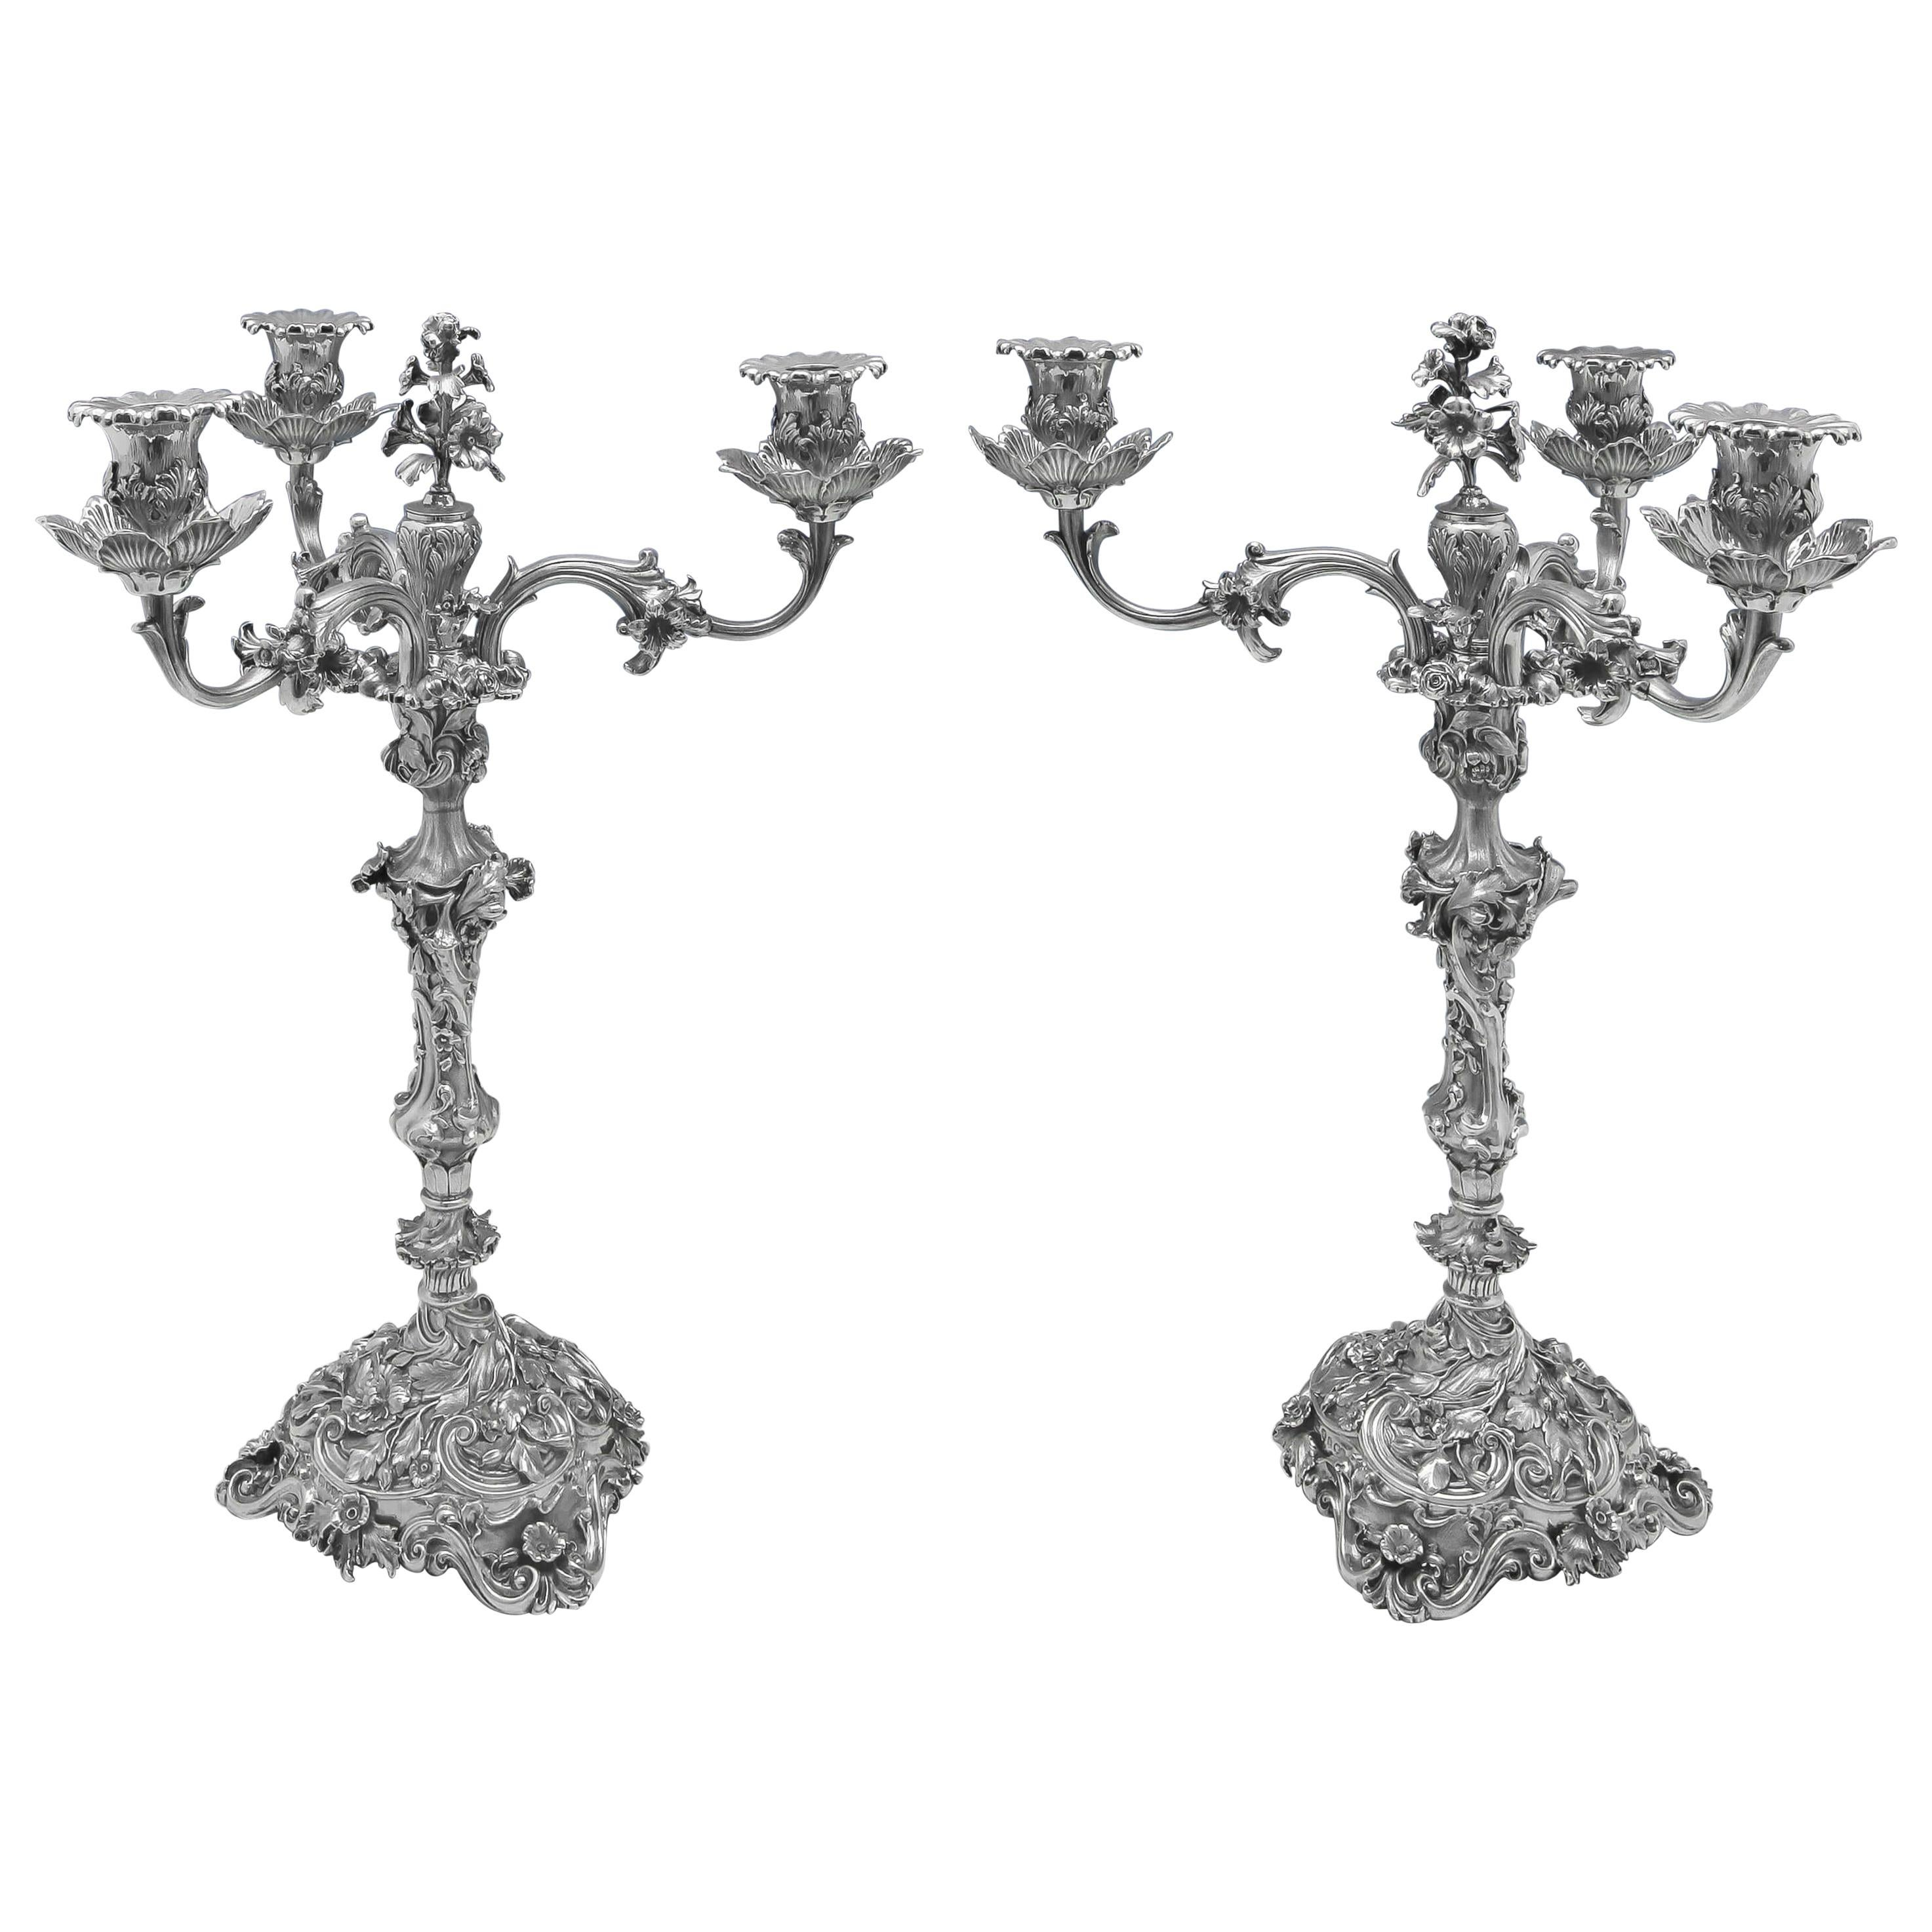 Rococo Revival Cast Antique Sterling Silver Pair Of Candelabra Weighing 250ozt